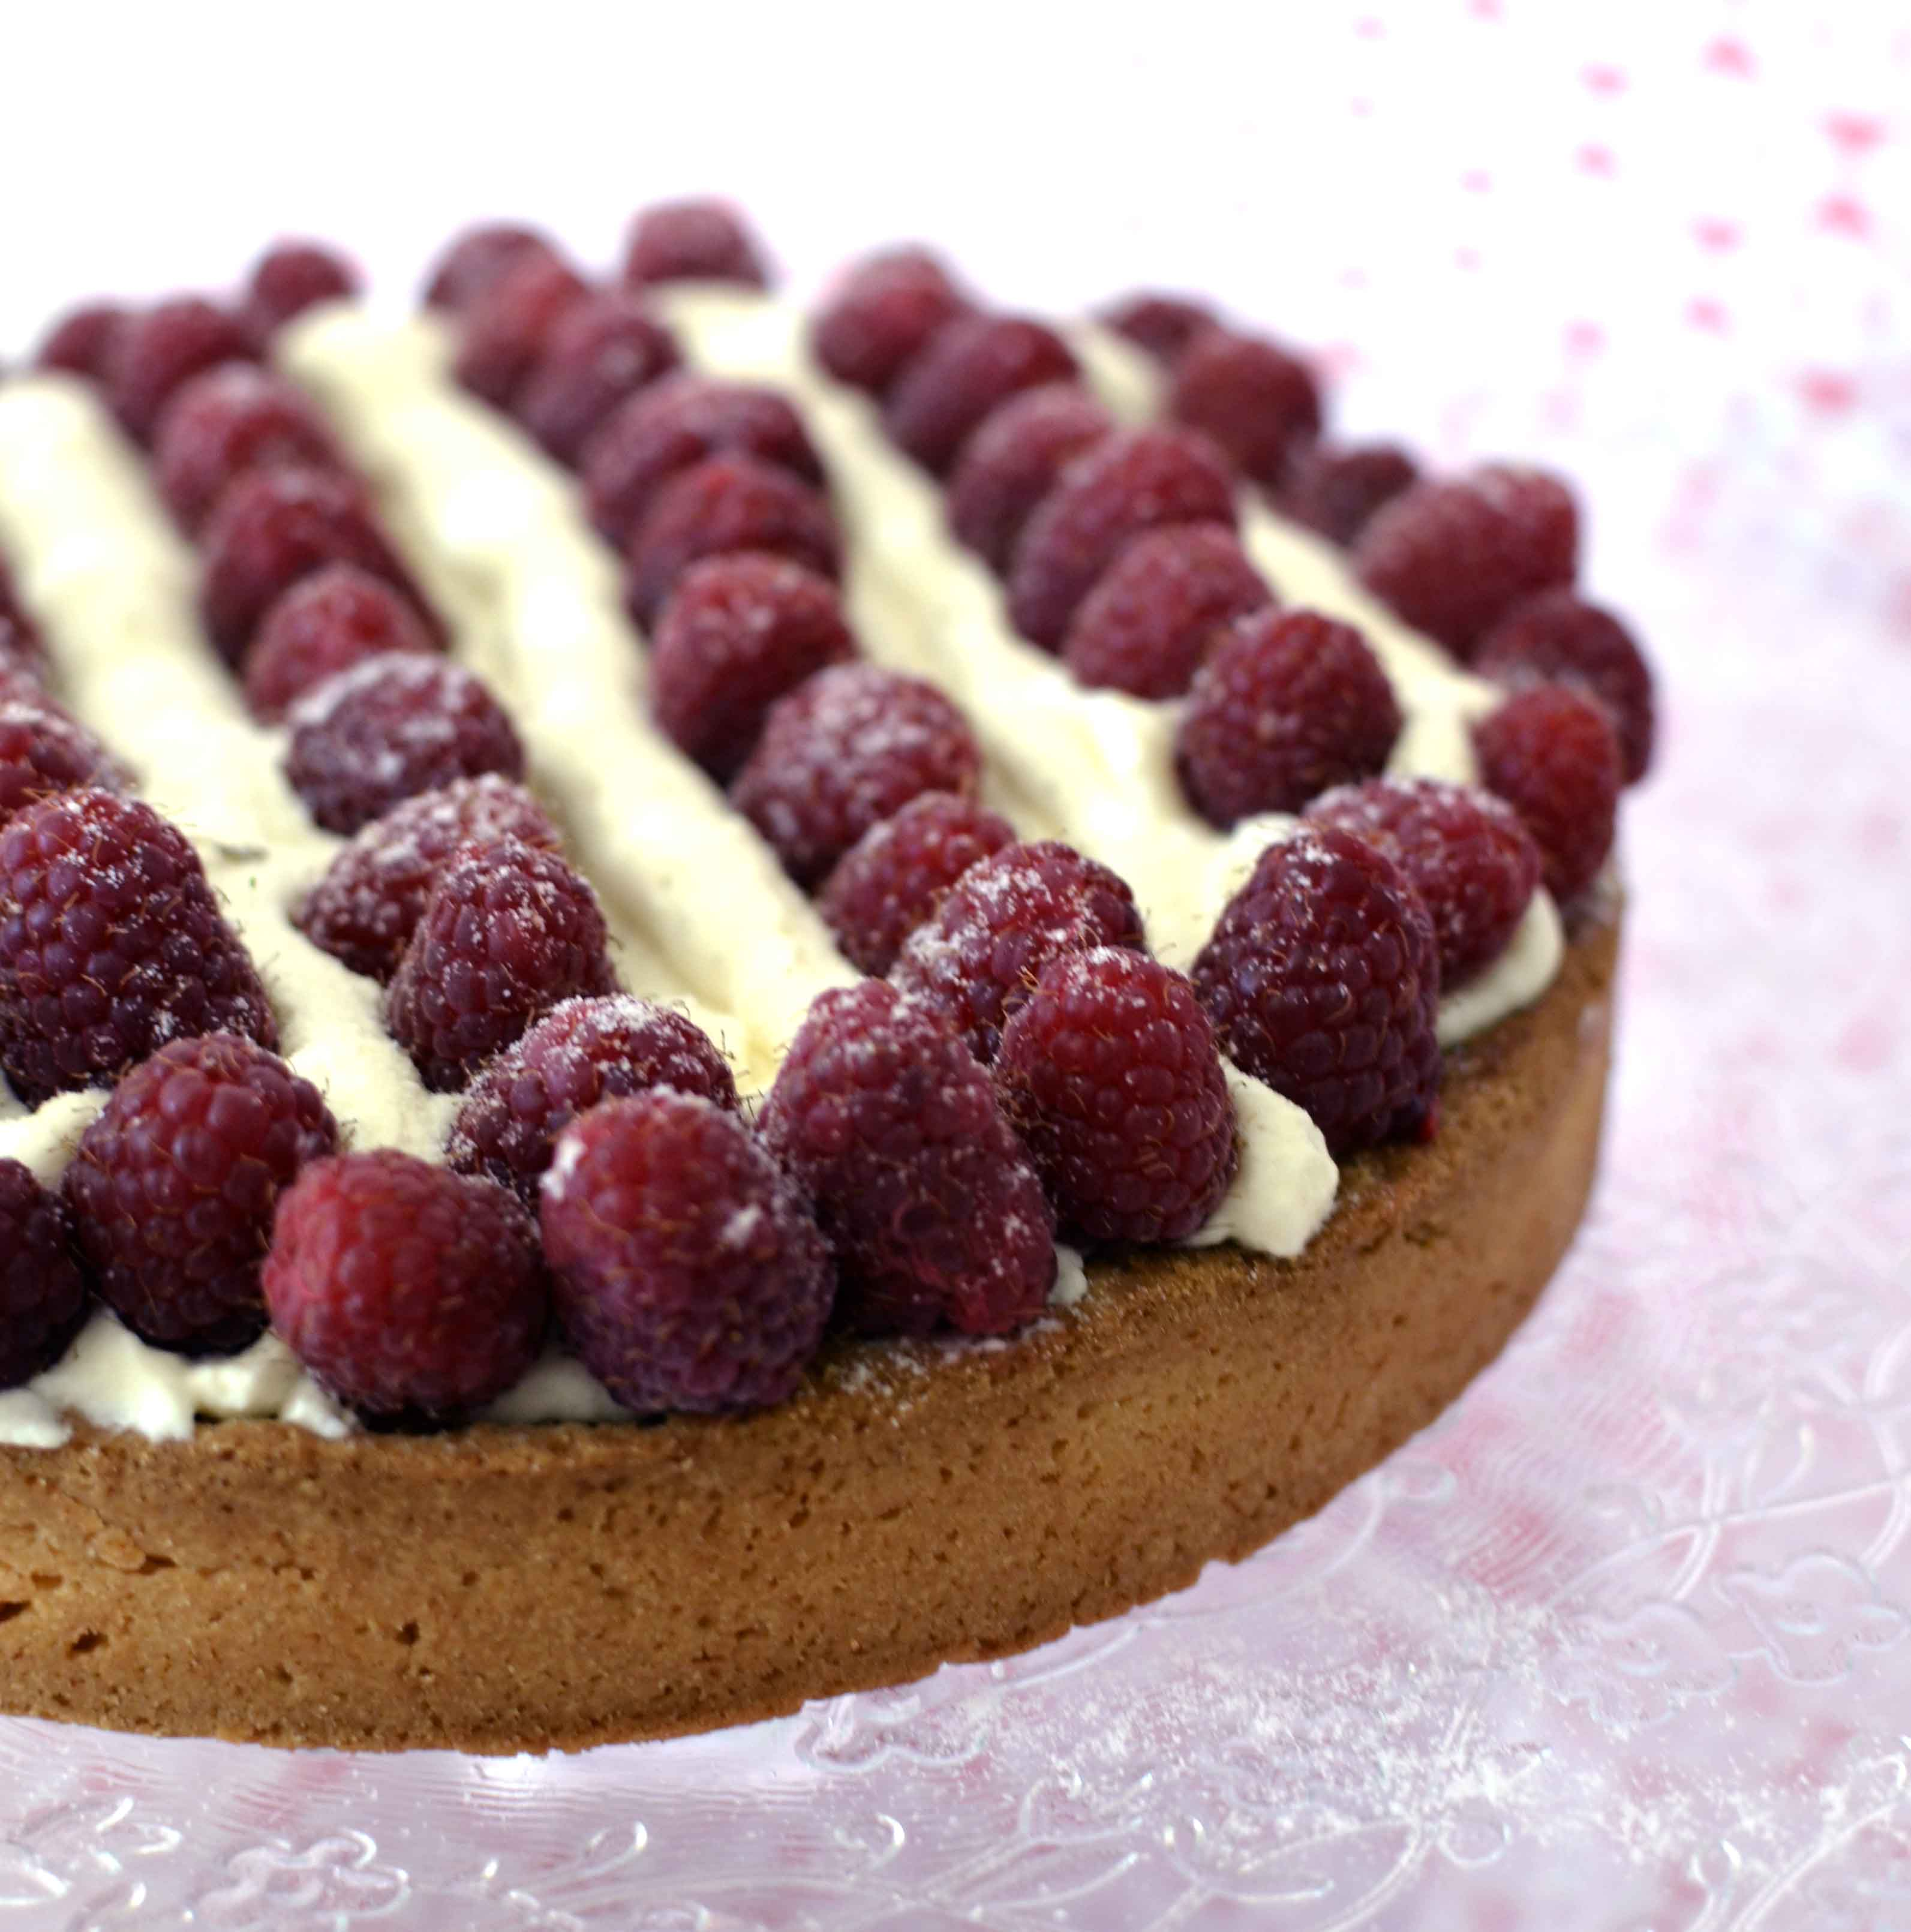 tarte-framboises-chantilly-mascarpone